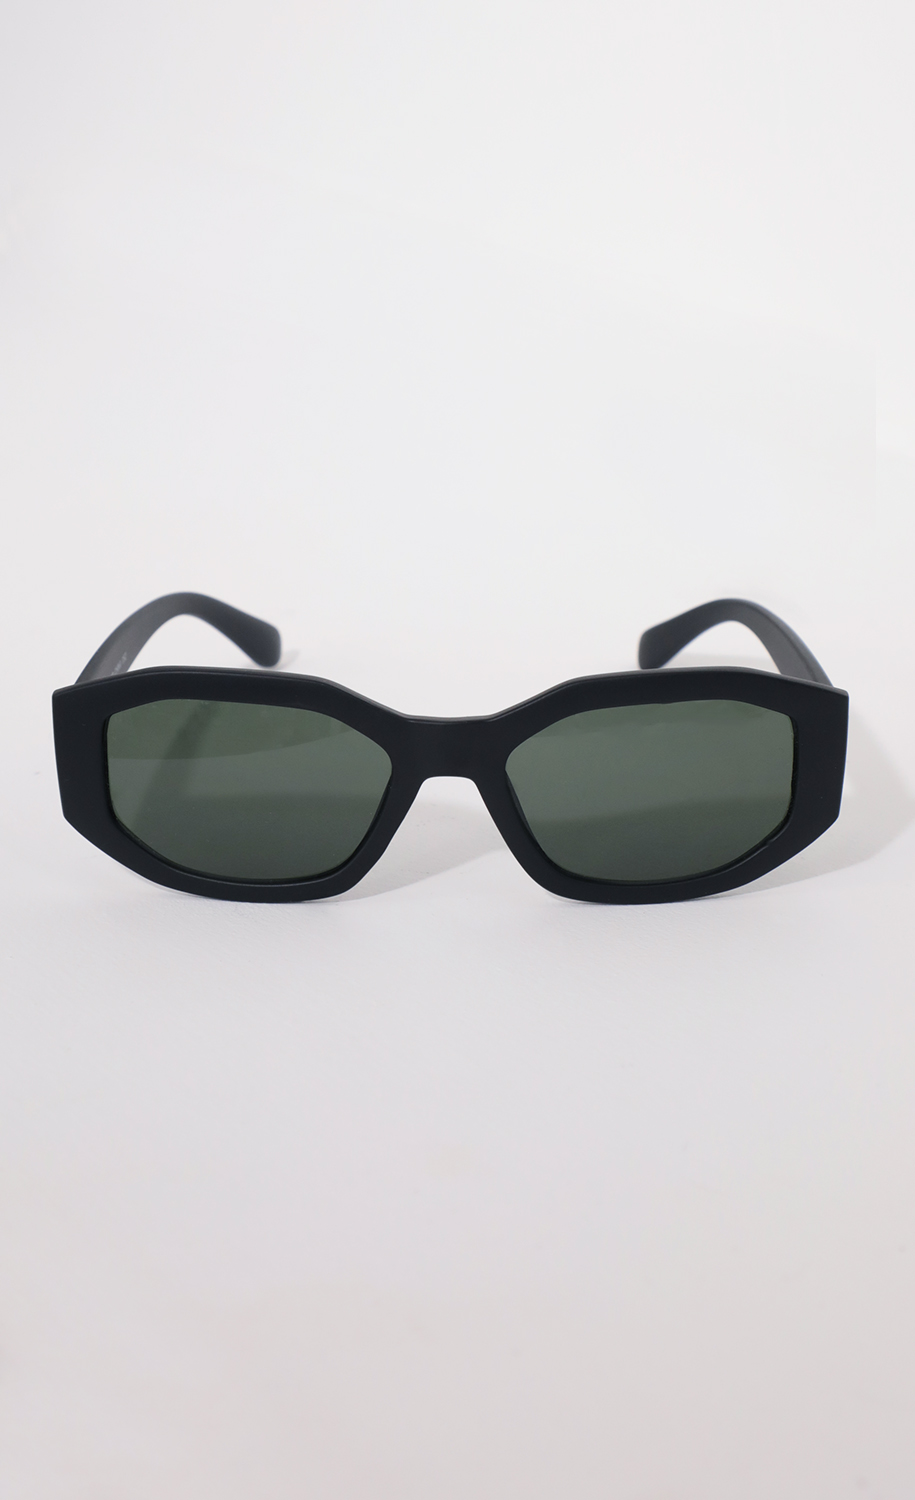 Polygon Geometric Sunglasses in Matte Black